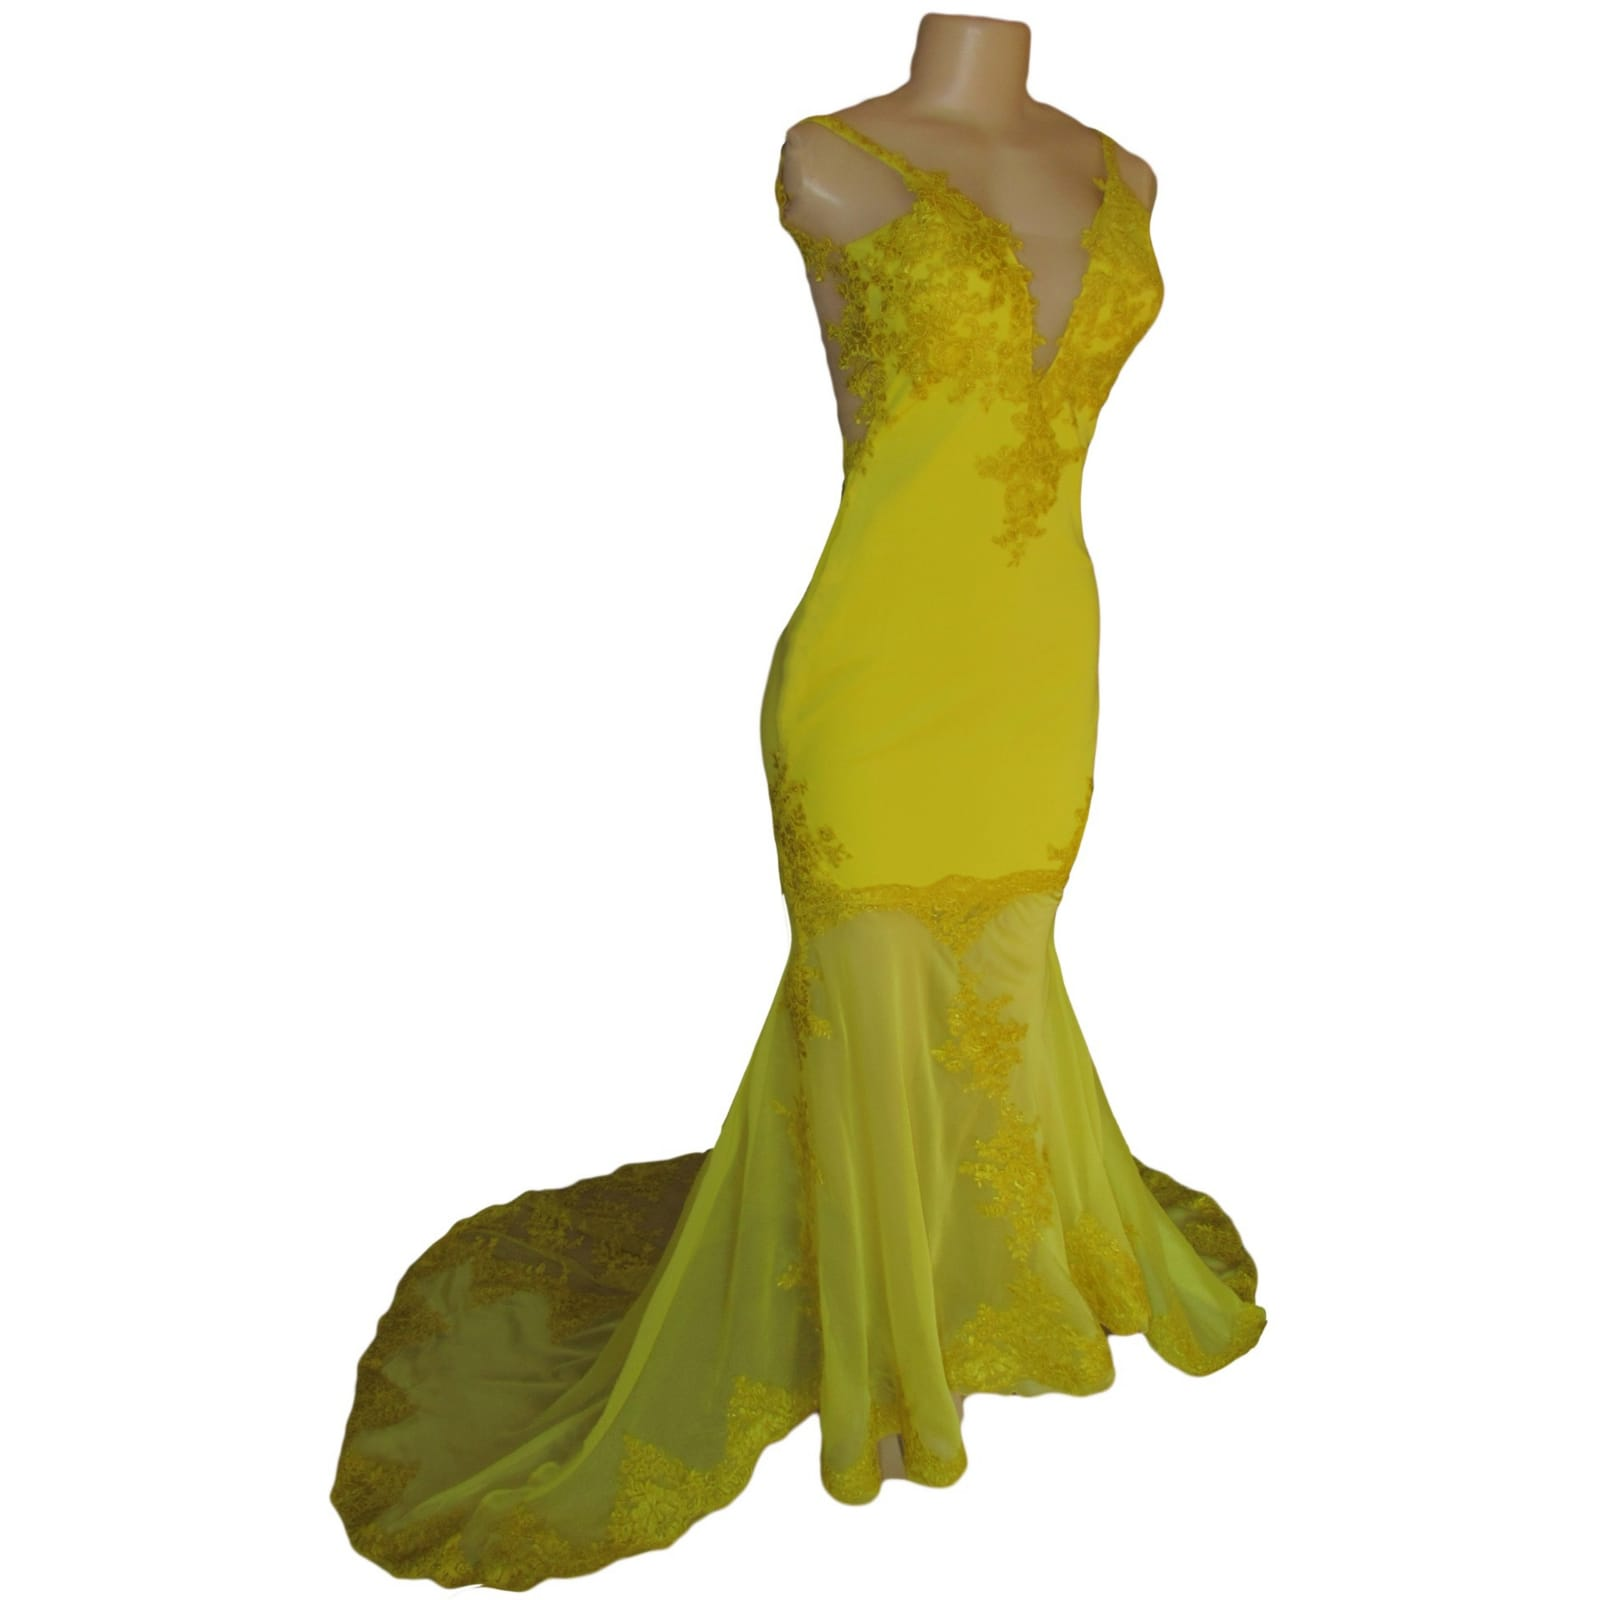 Canary yellow lace soft mermaid prom dress 7 canary yellow, lace, soft mermaid prom dance dress with sheer legs, detailed with lace. With an illusion open back.